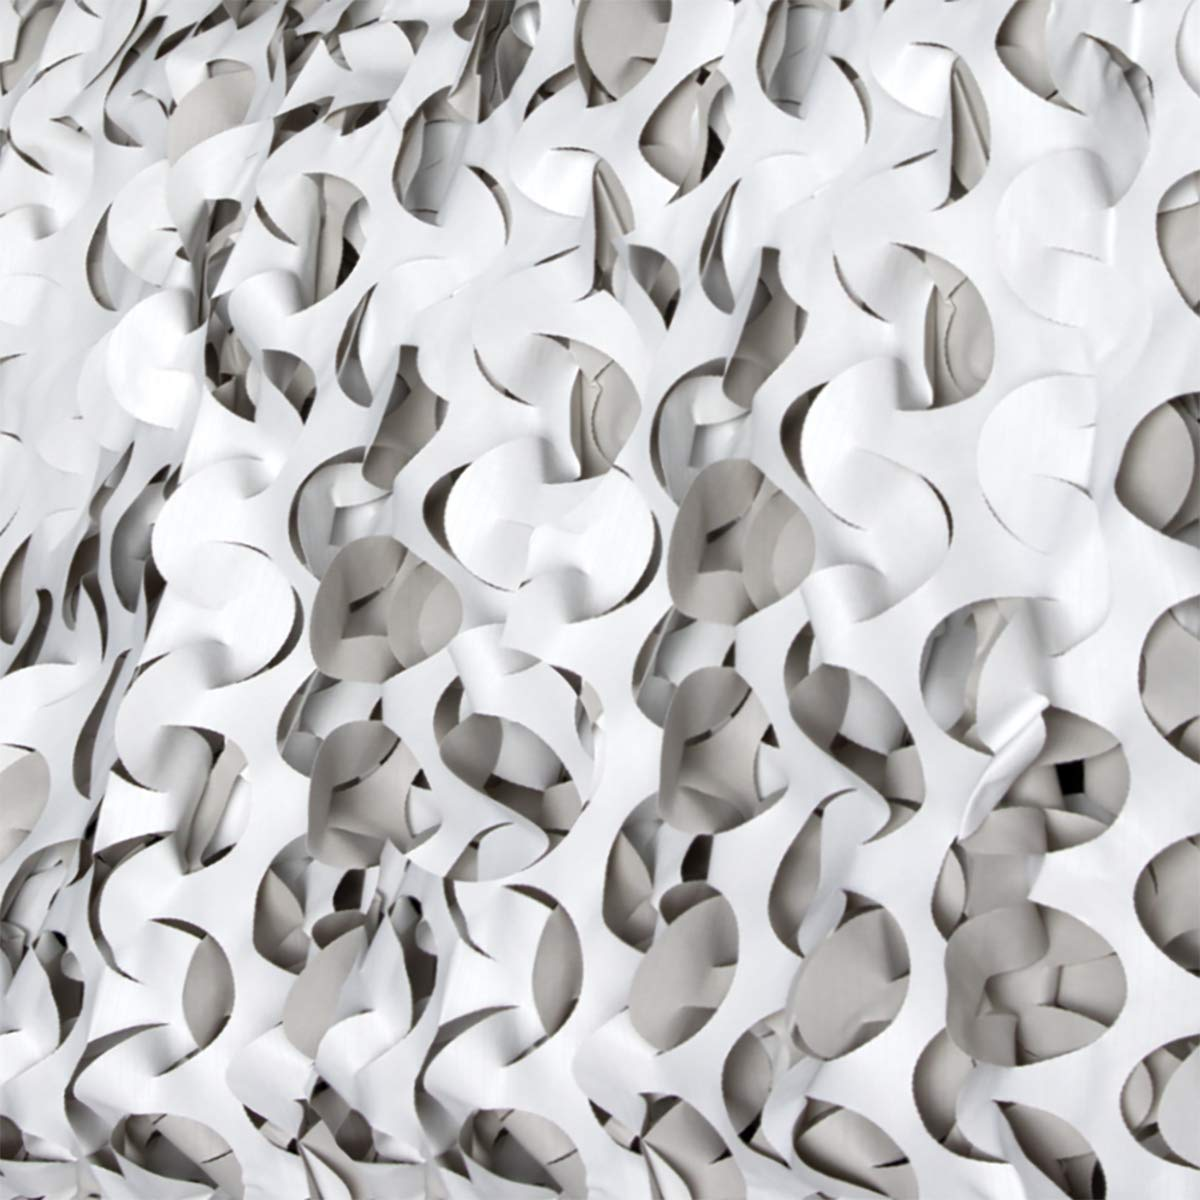 CamoSystems Premium Series Ultra-lite Military Spec Camouflage Netting, Bulk Available, Snow - White/Light Gray